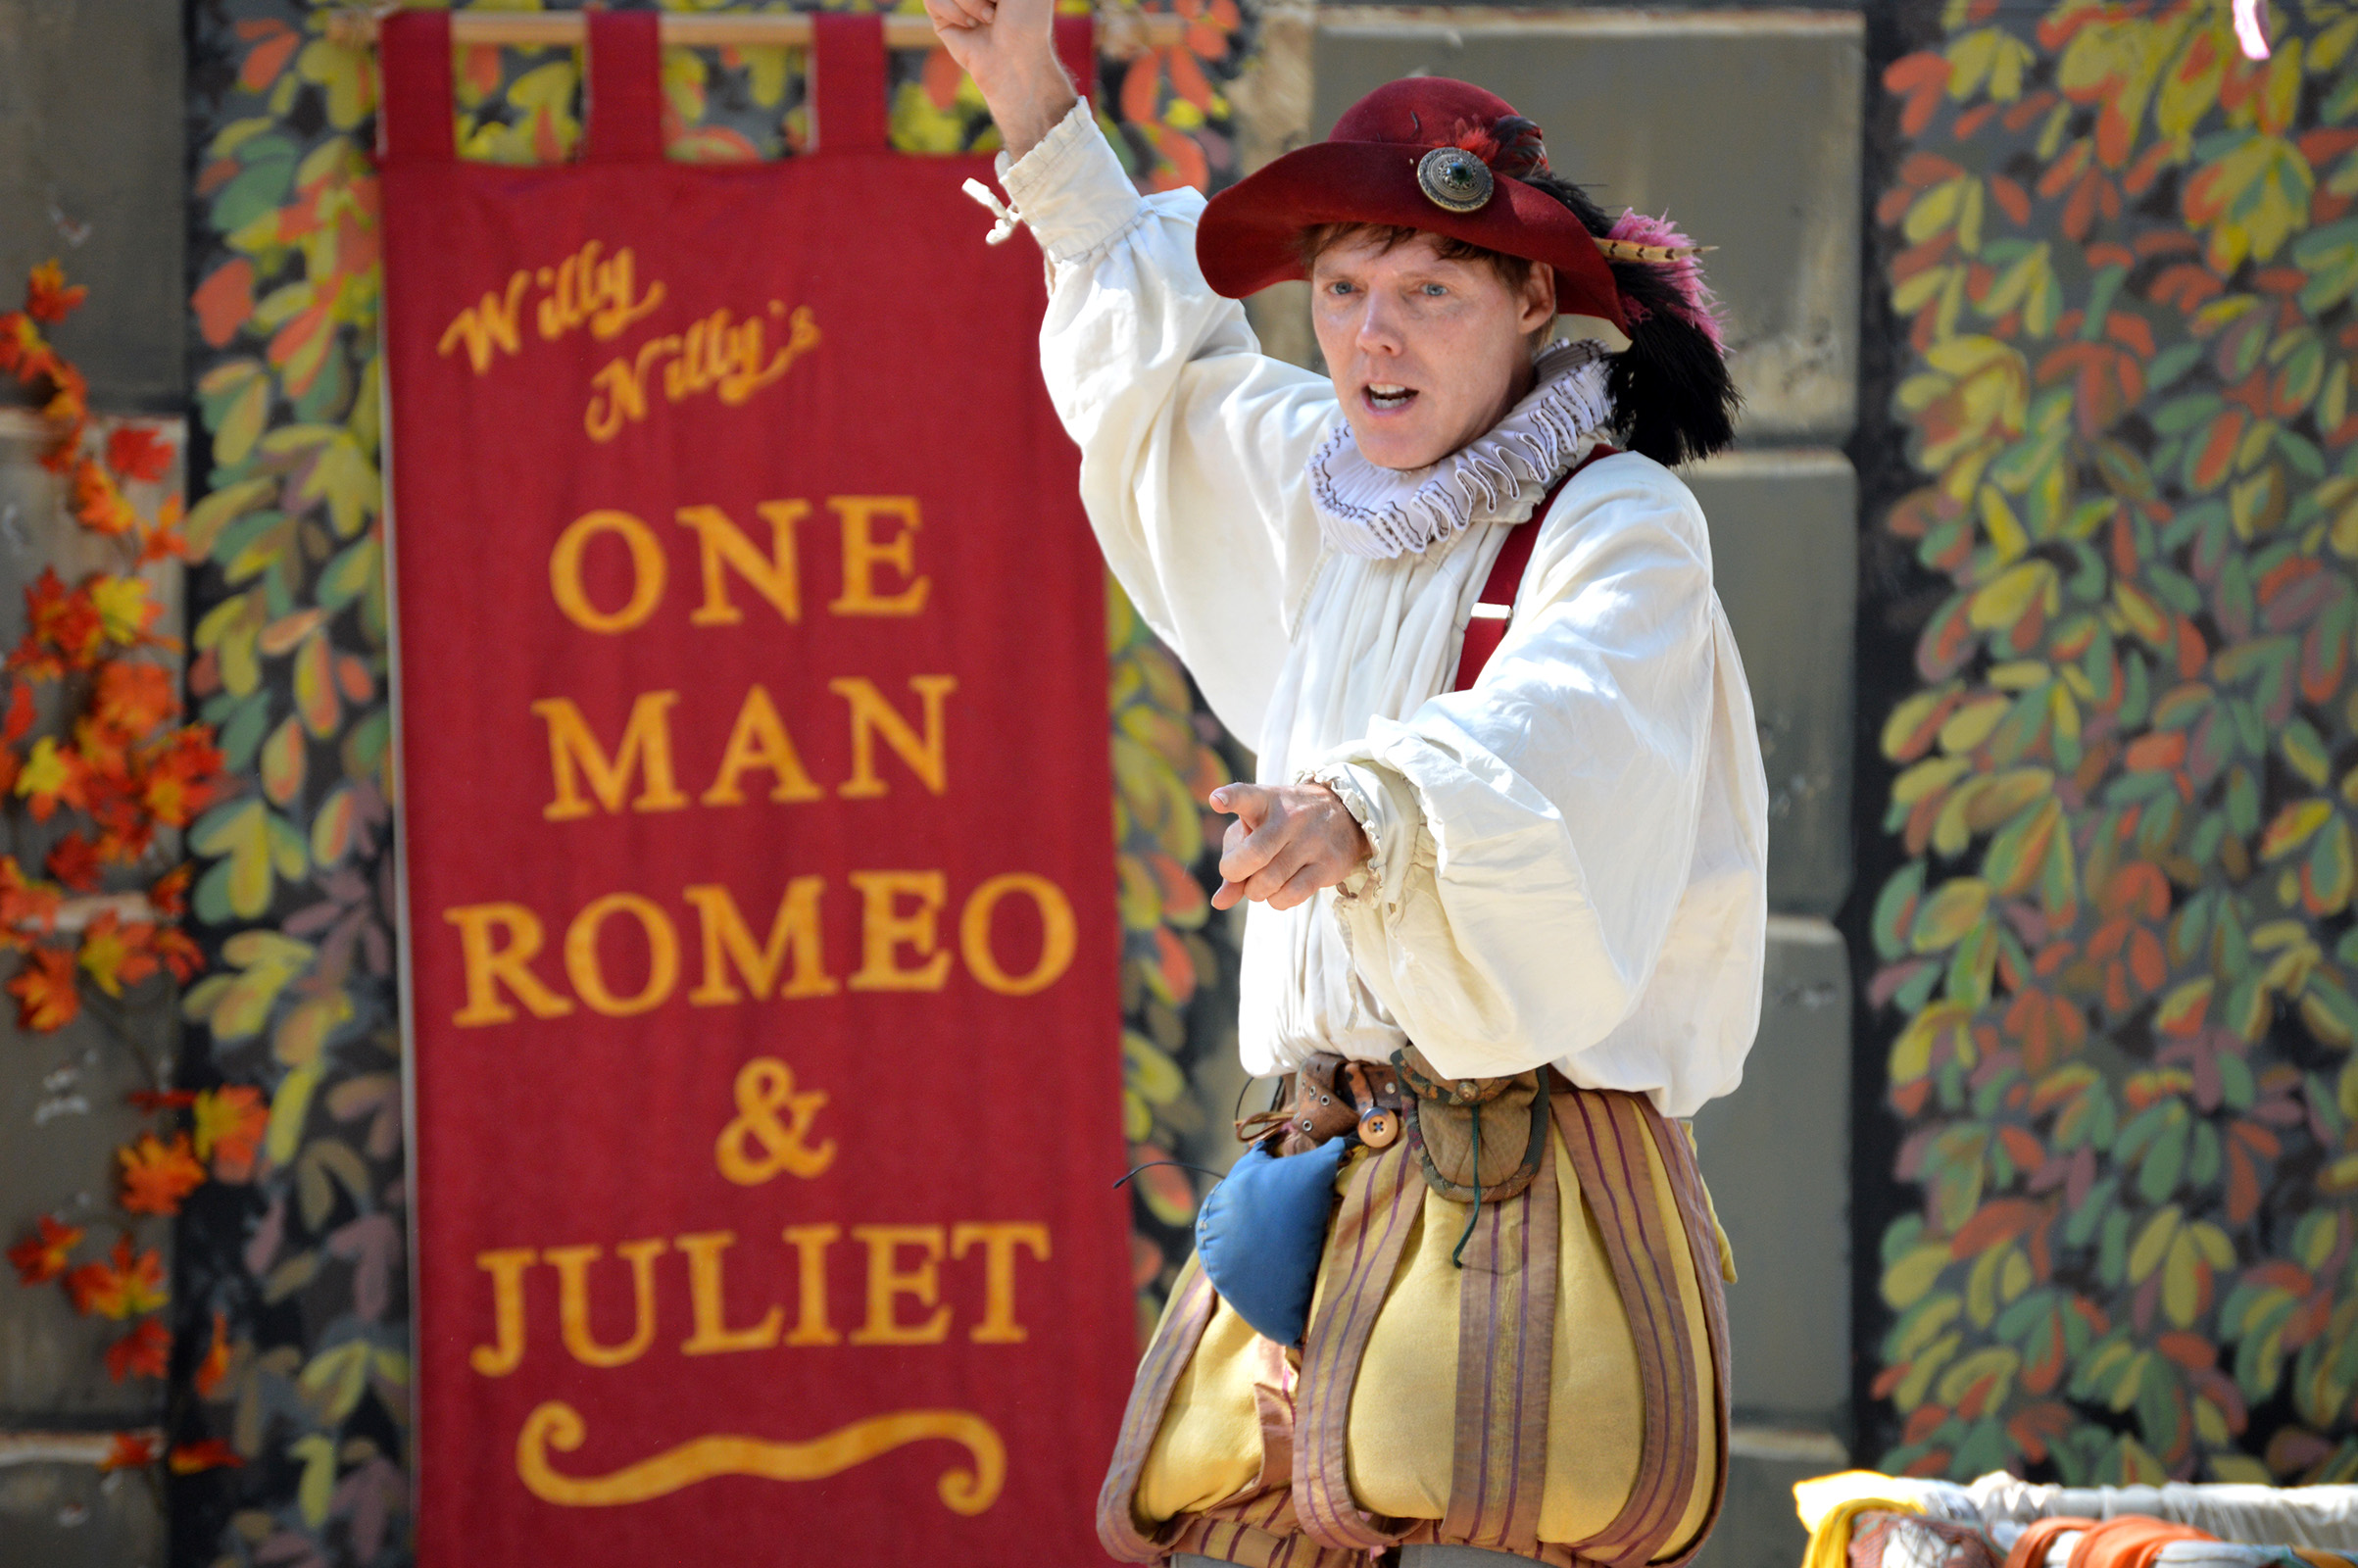 Entertainment: One Man Romeo and Juliet comedy